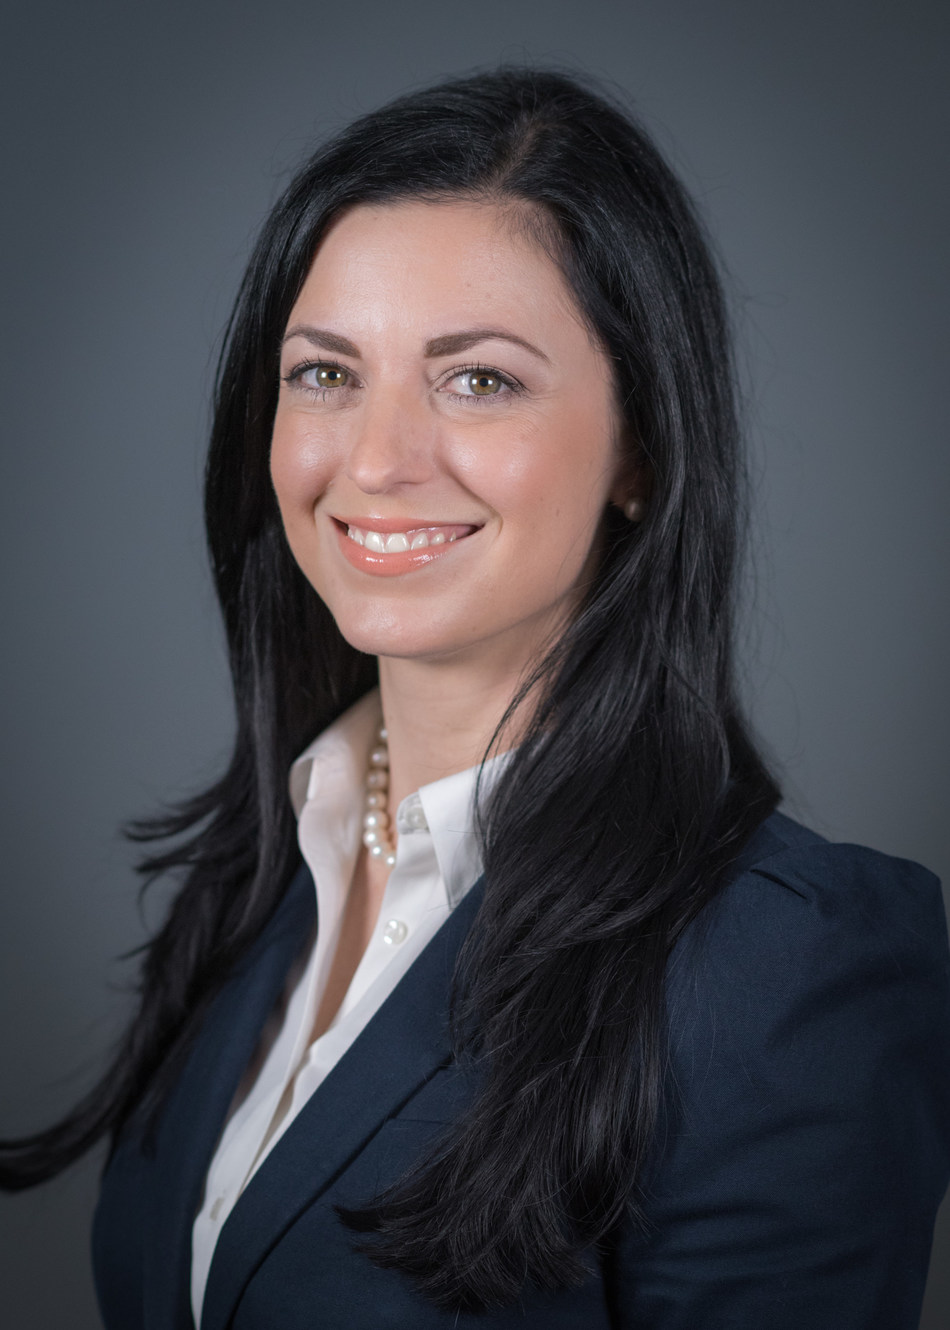 April Neumann, Senior Vice President at Ultimate Medical Academy, is a contributor for Fierce Healthcare.